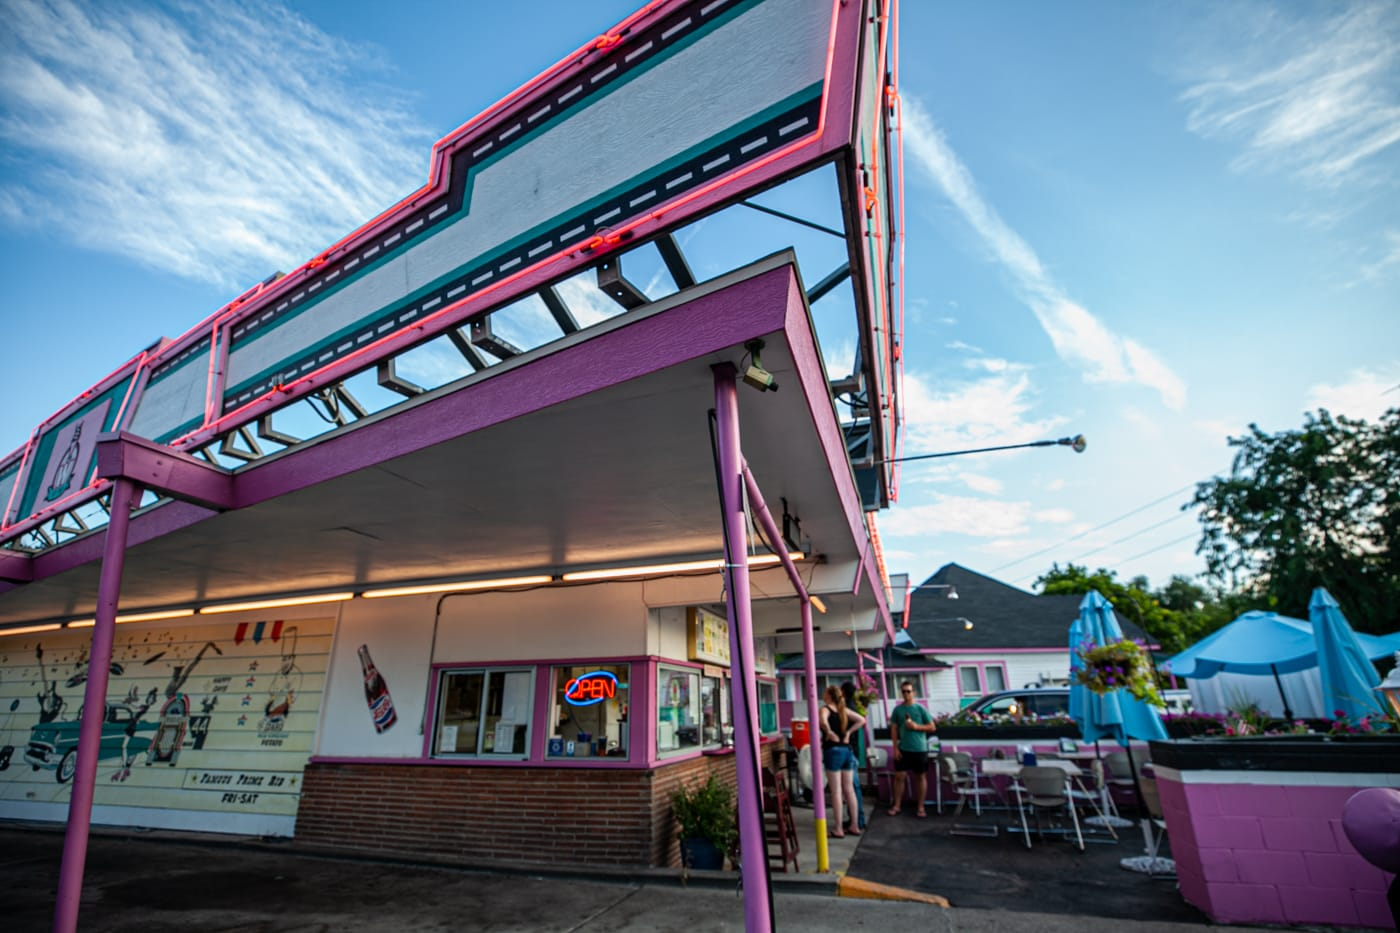 Westside Drive In in Boise, Idaho - a classic pink diner featured on Diners, Drive Ins, and Dives.